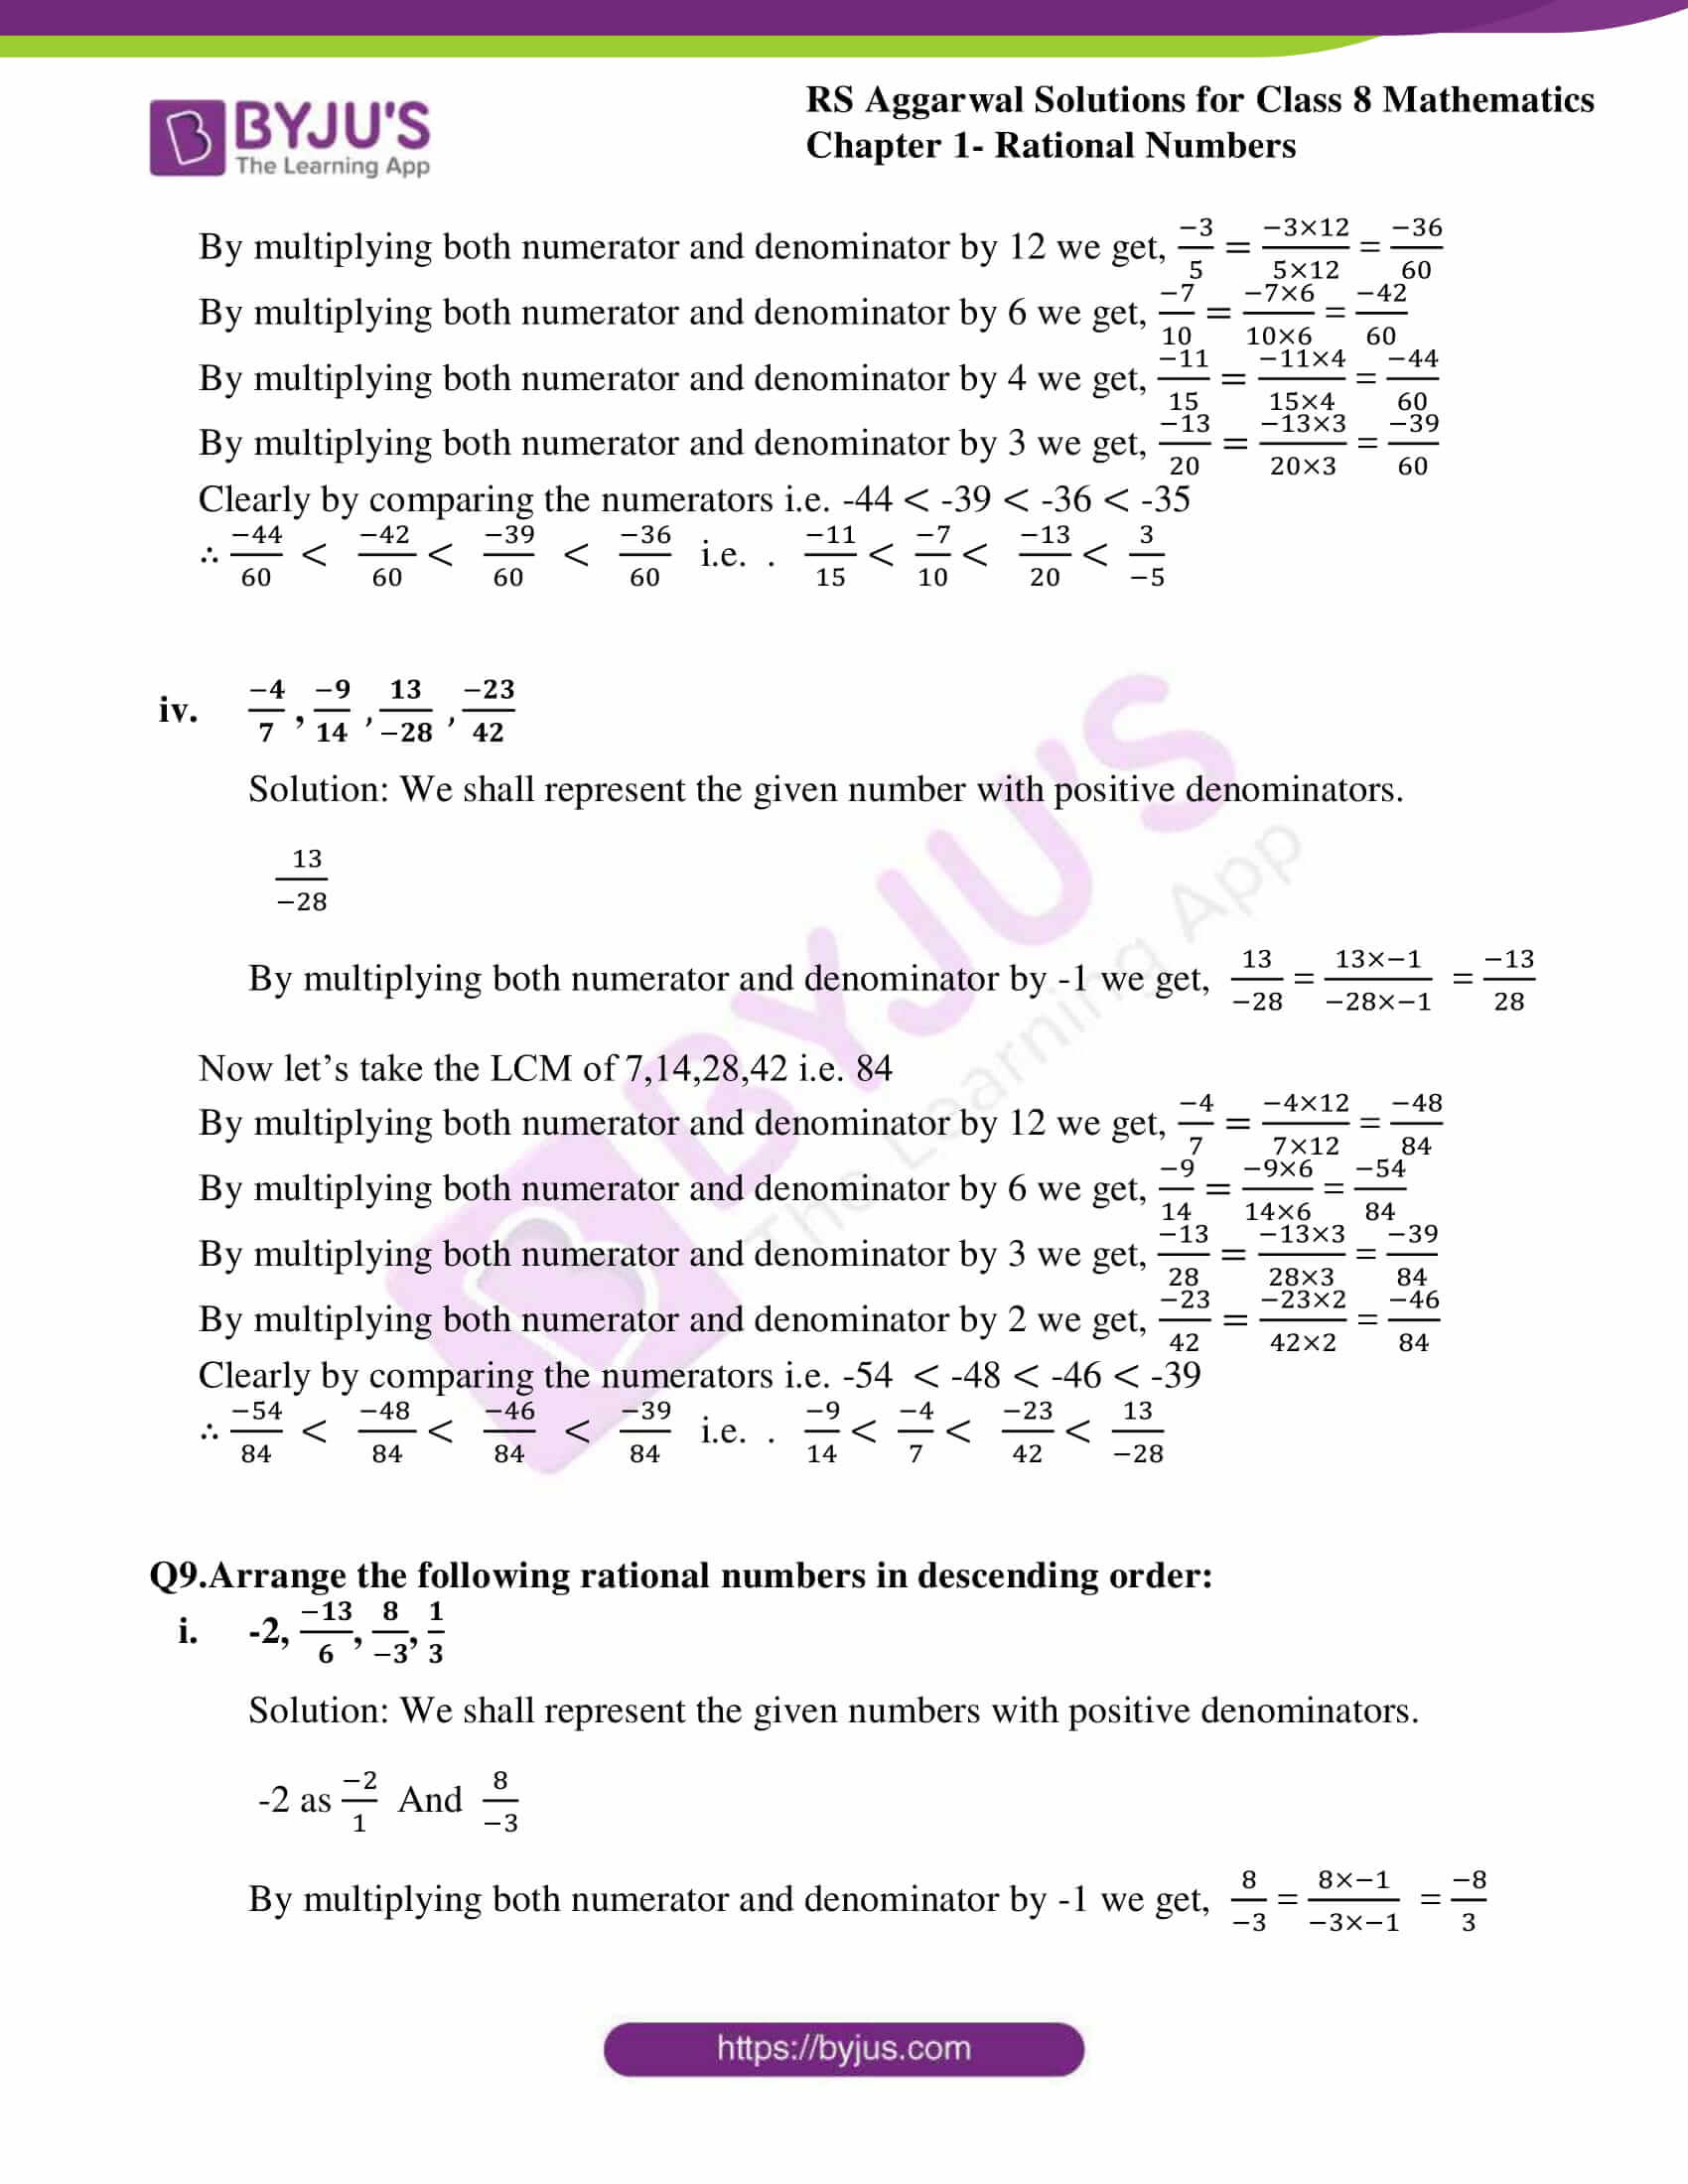 rs aggarwal solutions class 8 maths chapter 1a